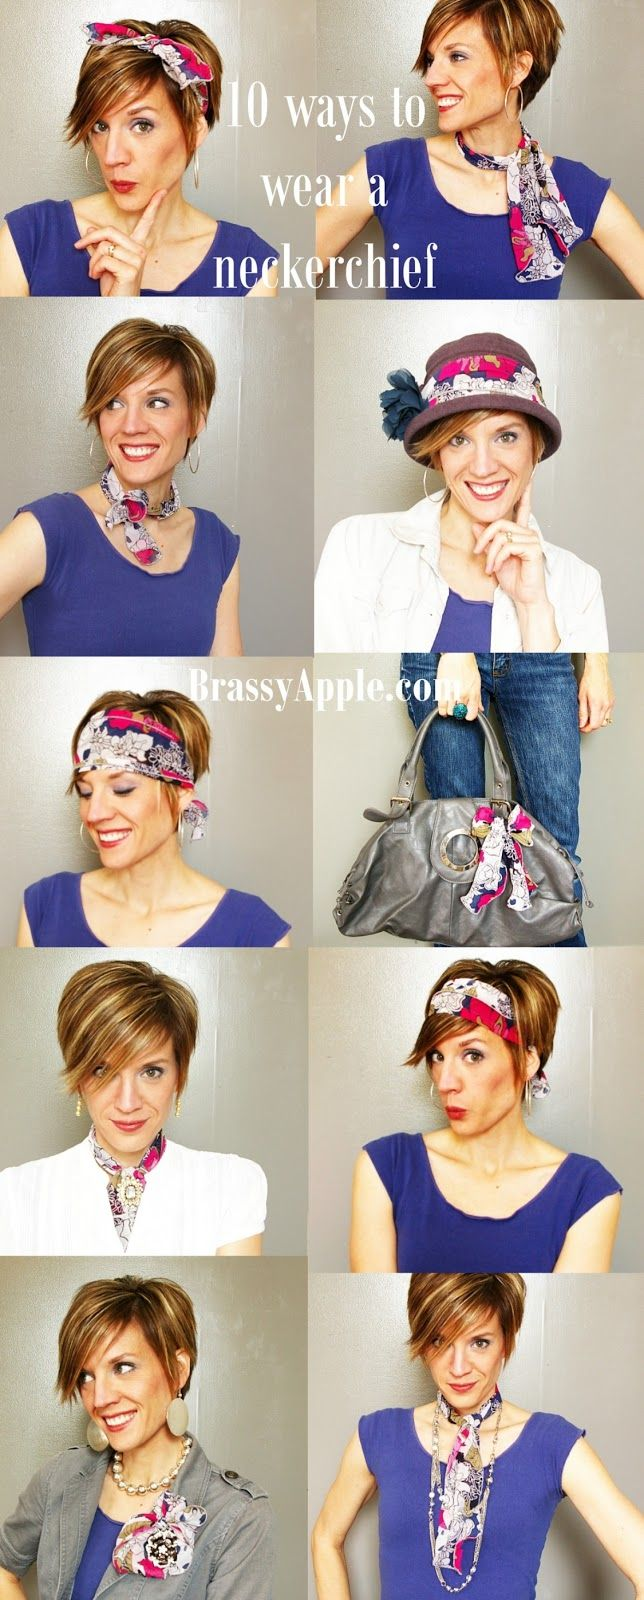 10 ways to wear a Neckerchief brassyapple.com #whattowear #scarf